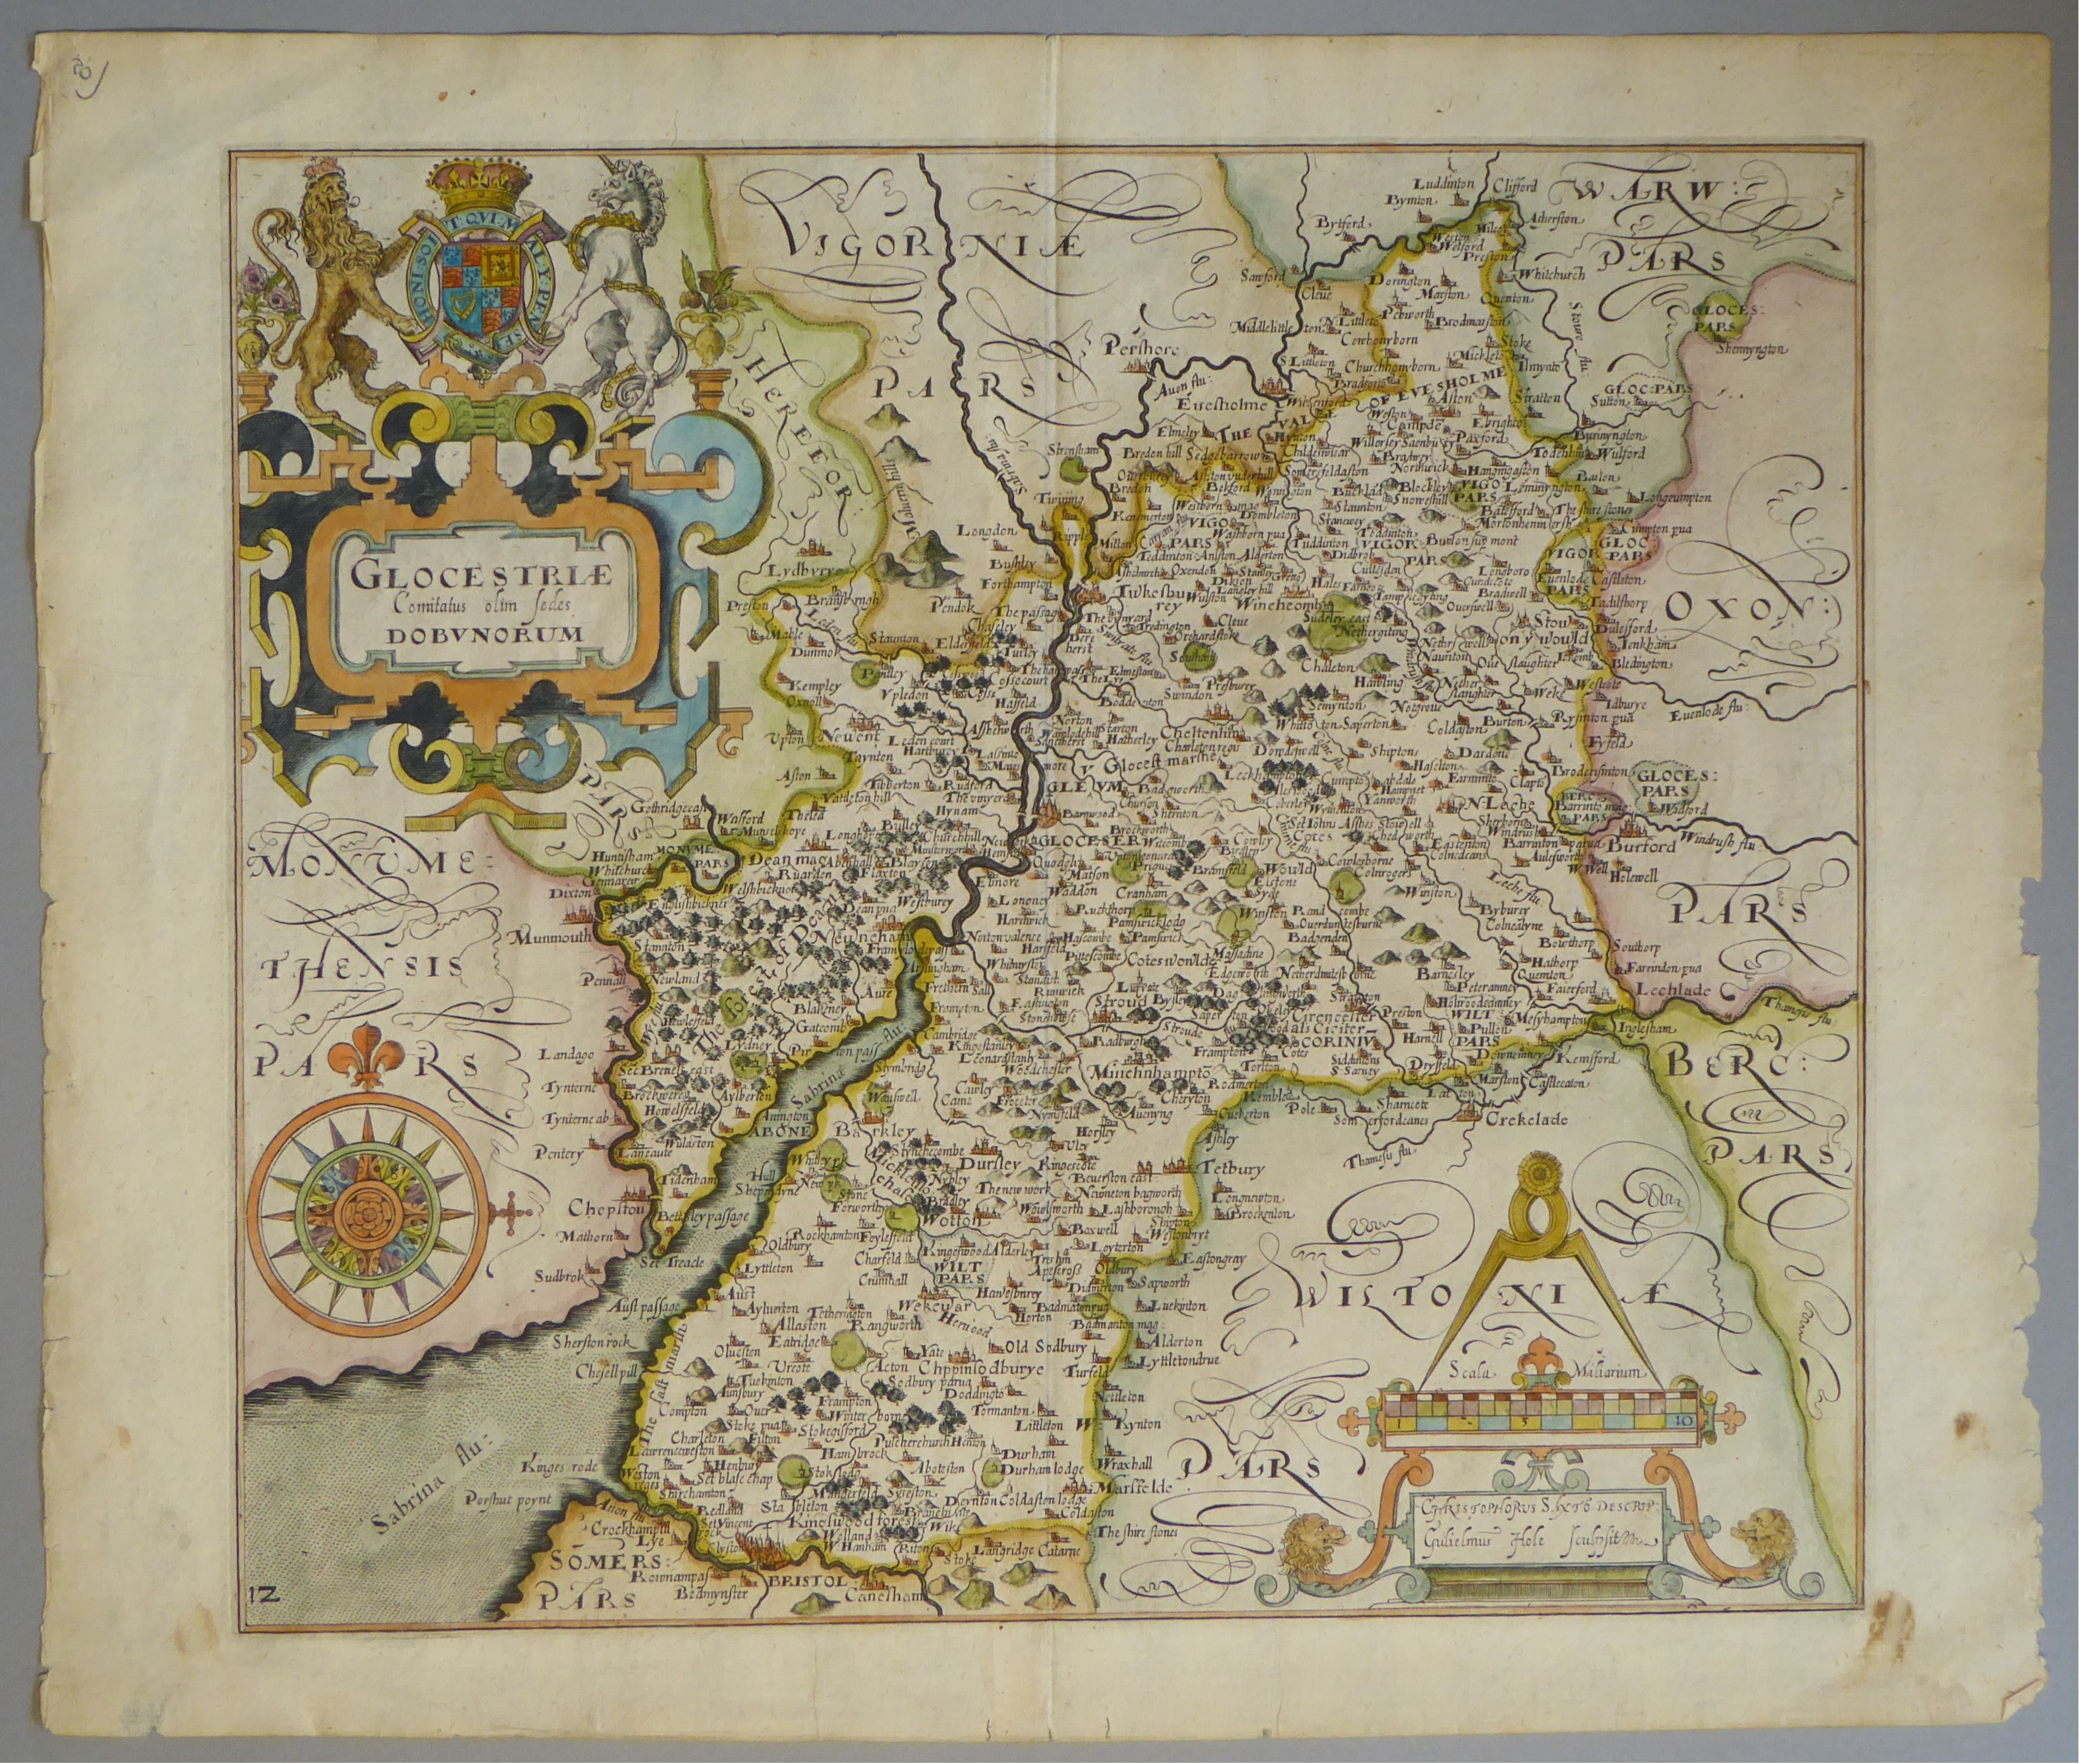 Lot 49 - A C17th hand coloured copper engraved map of Gloucestershire by William Hole c1637